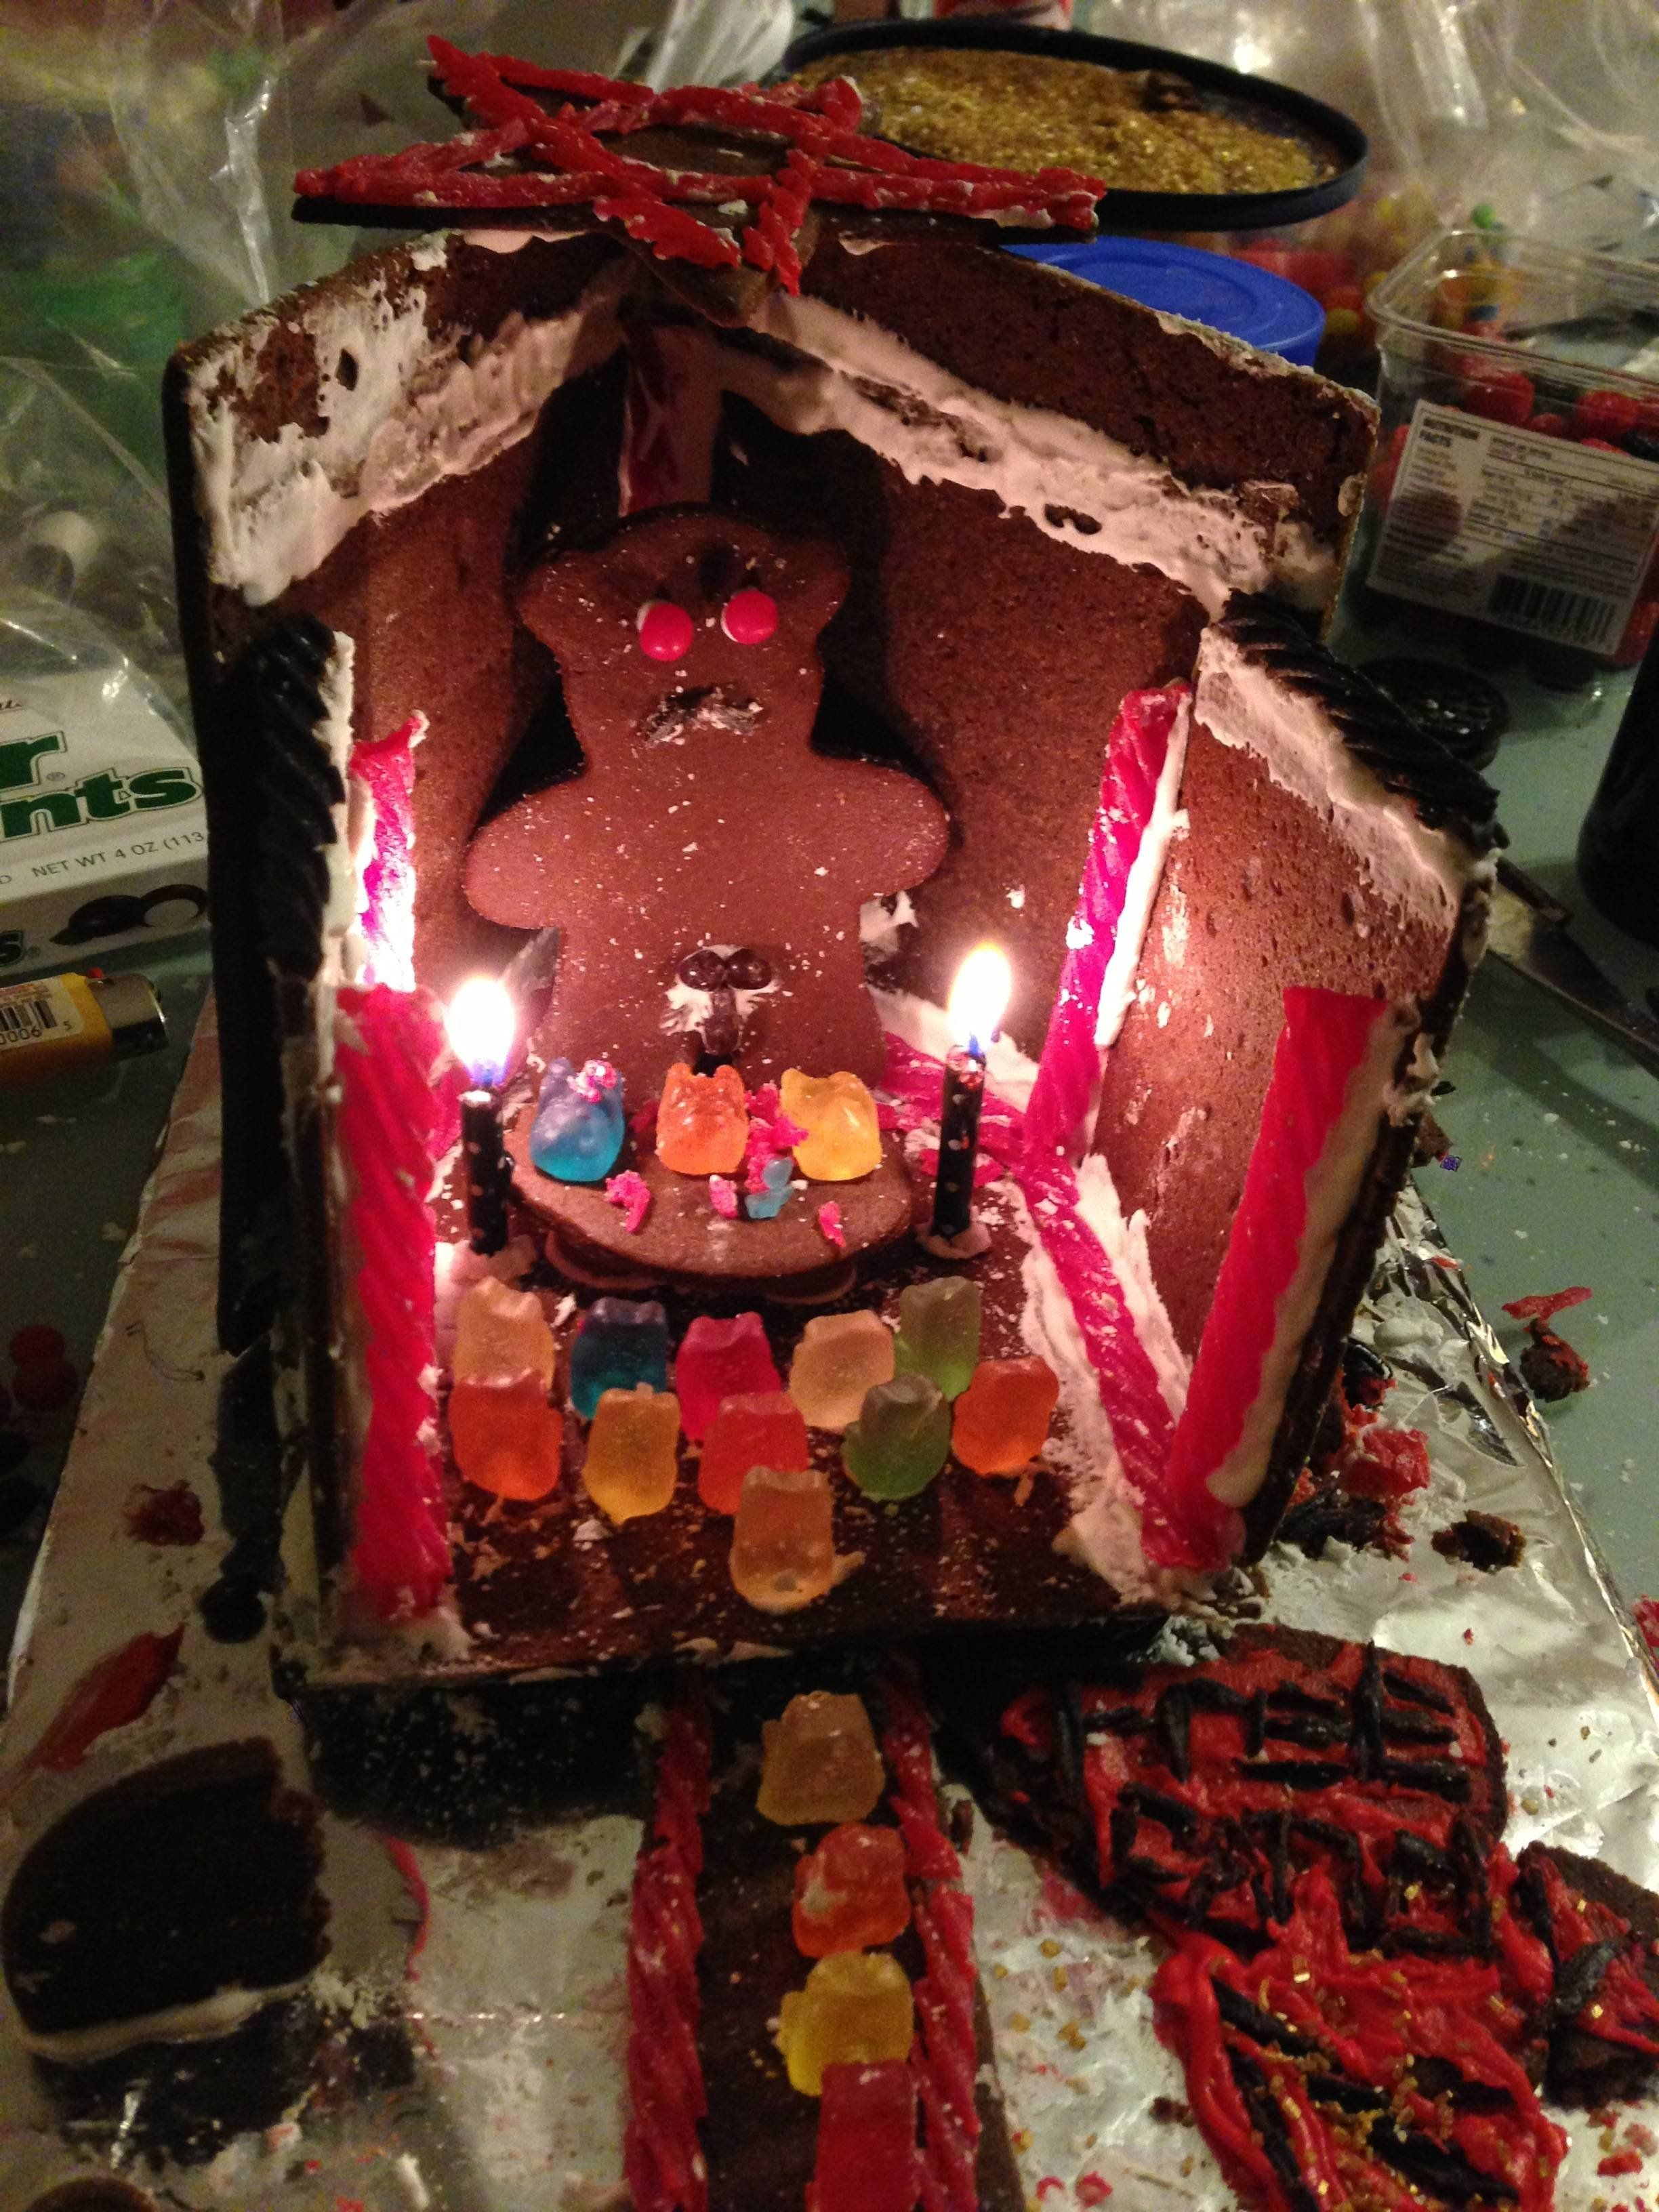 My date asked me what I wanted to do for our gingerbread house... She probably shouldn't come to me for suggestions.